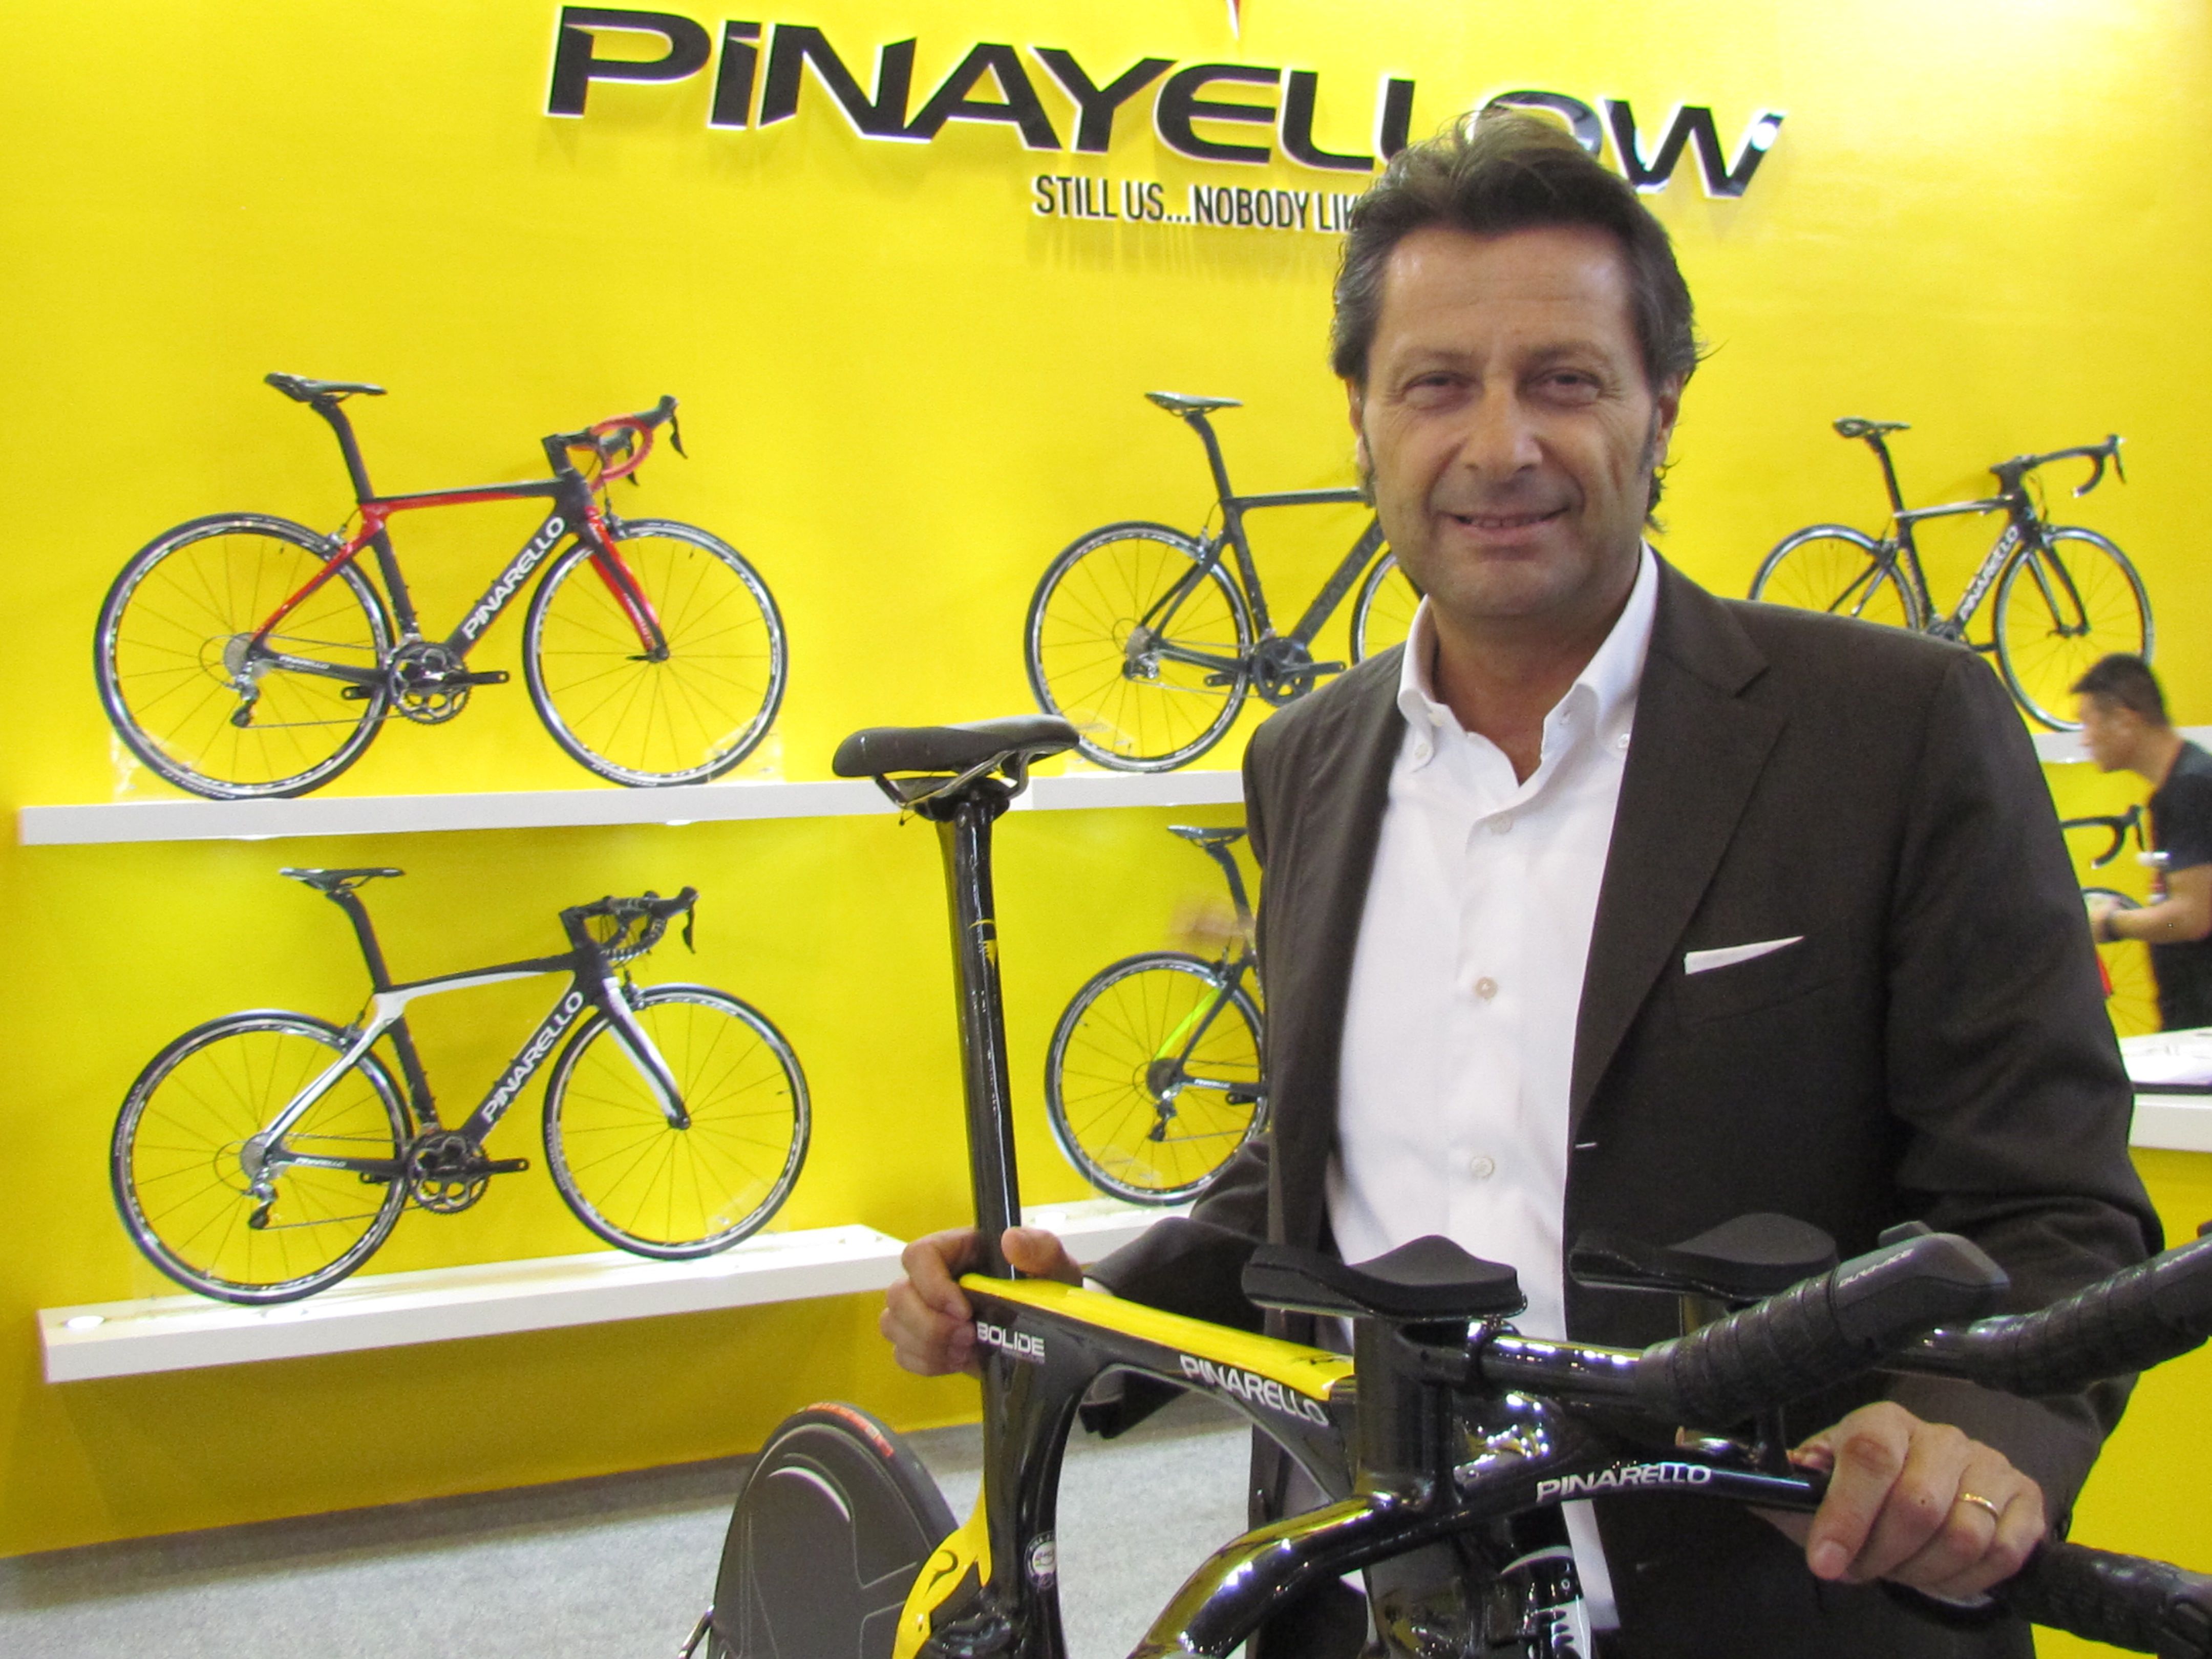 Takeover Associates Pinarello with Luxury Brands Like Dior